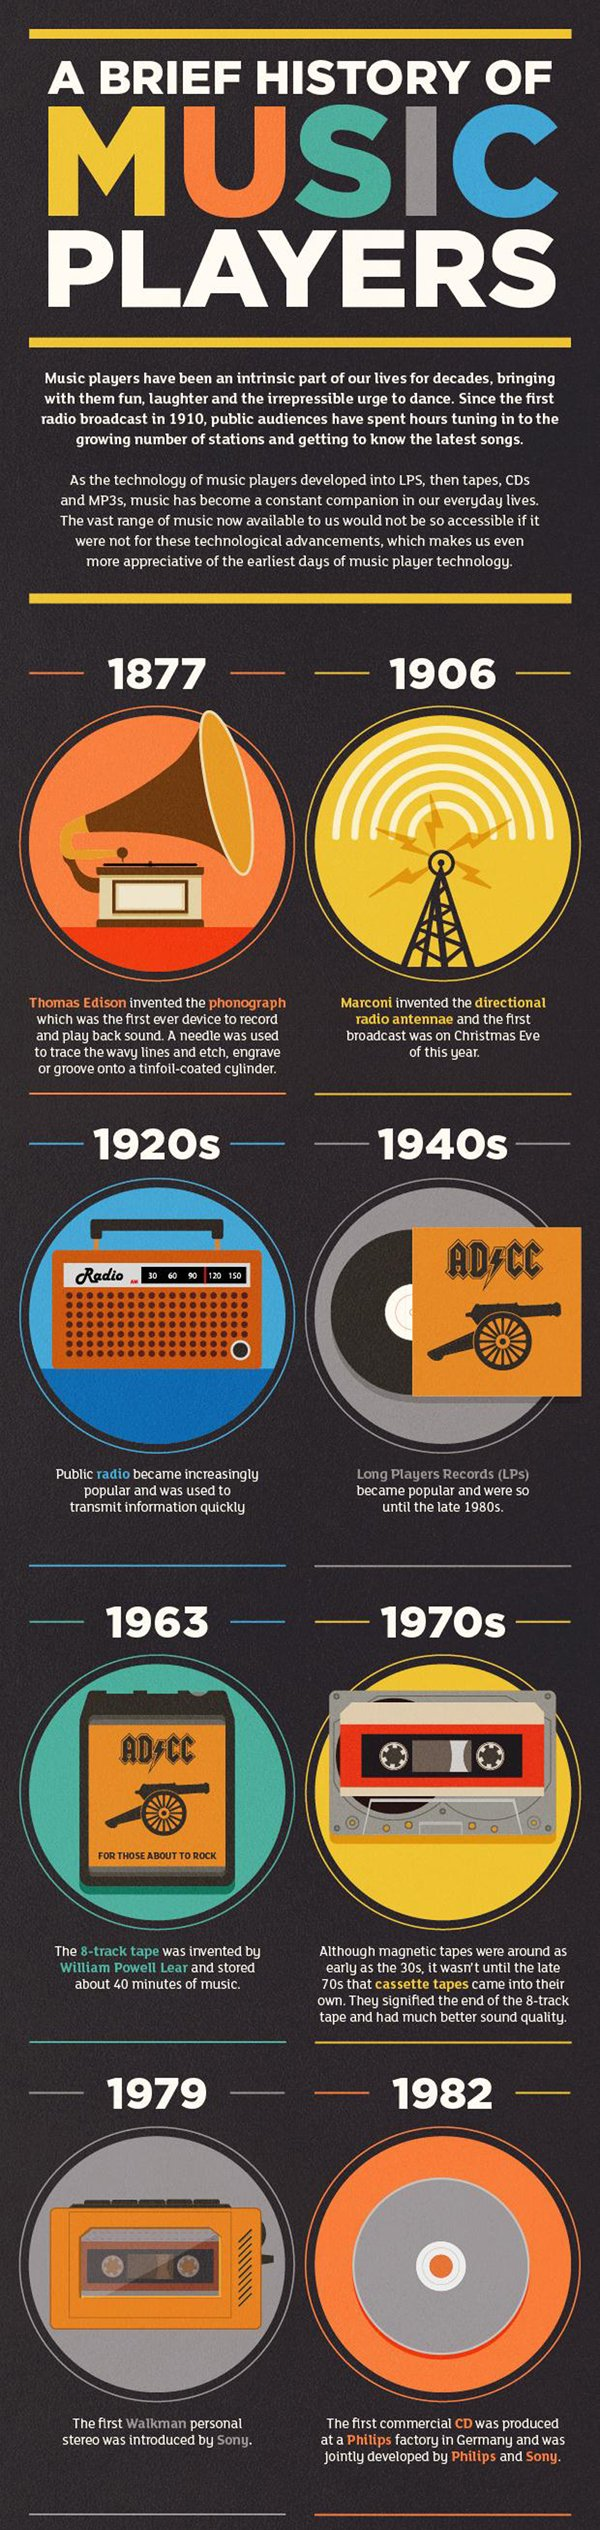 music_players_infographic_one